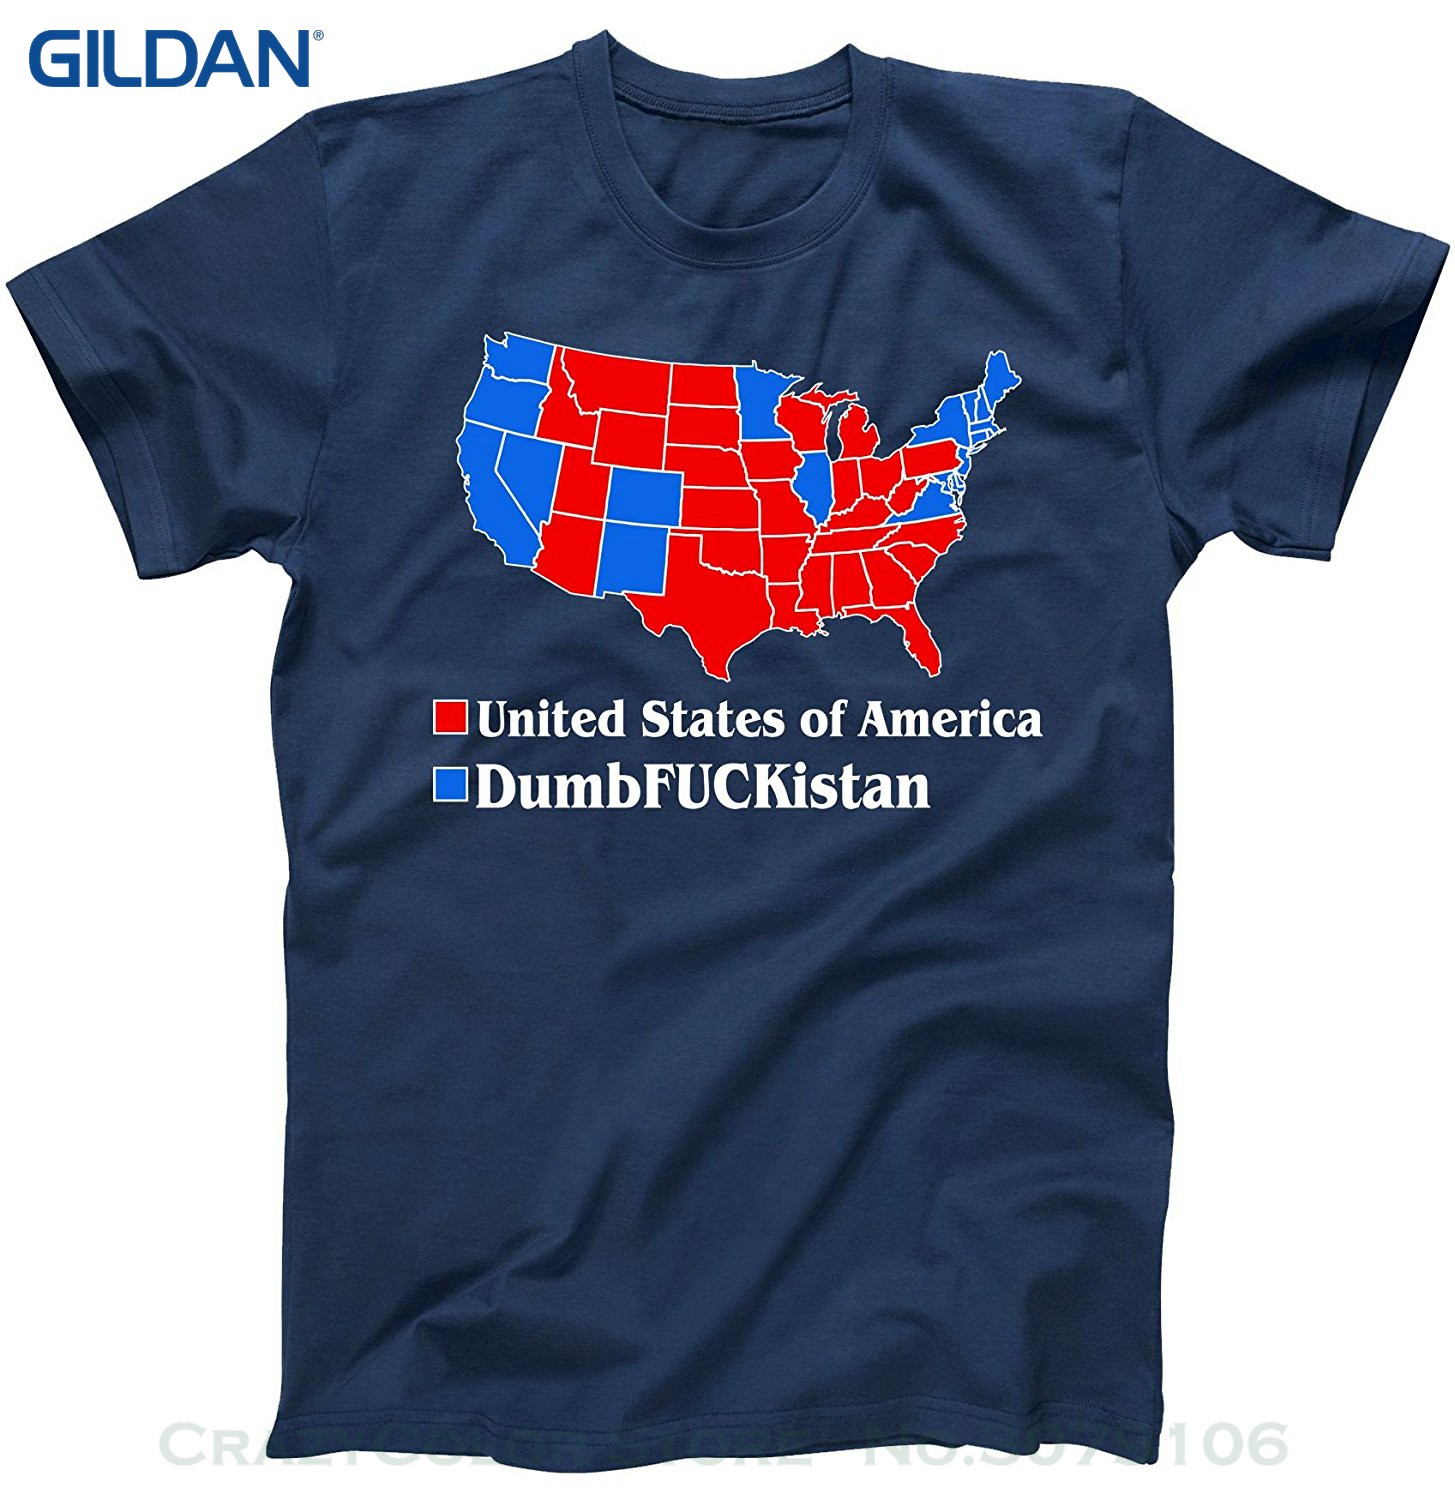 Short Sleeves Cotton Free Shipping Republican Version United States Of America Vs. Dumbfuckistan Election Map T-shirt